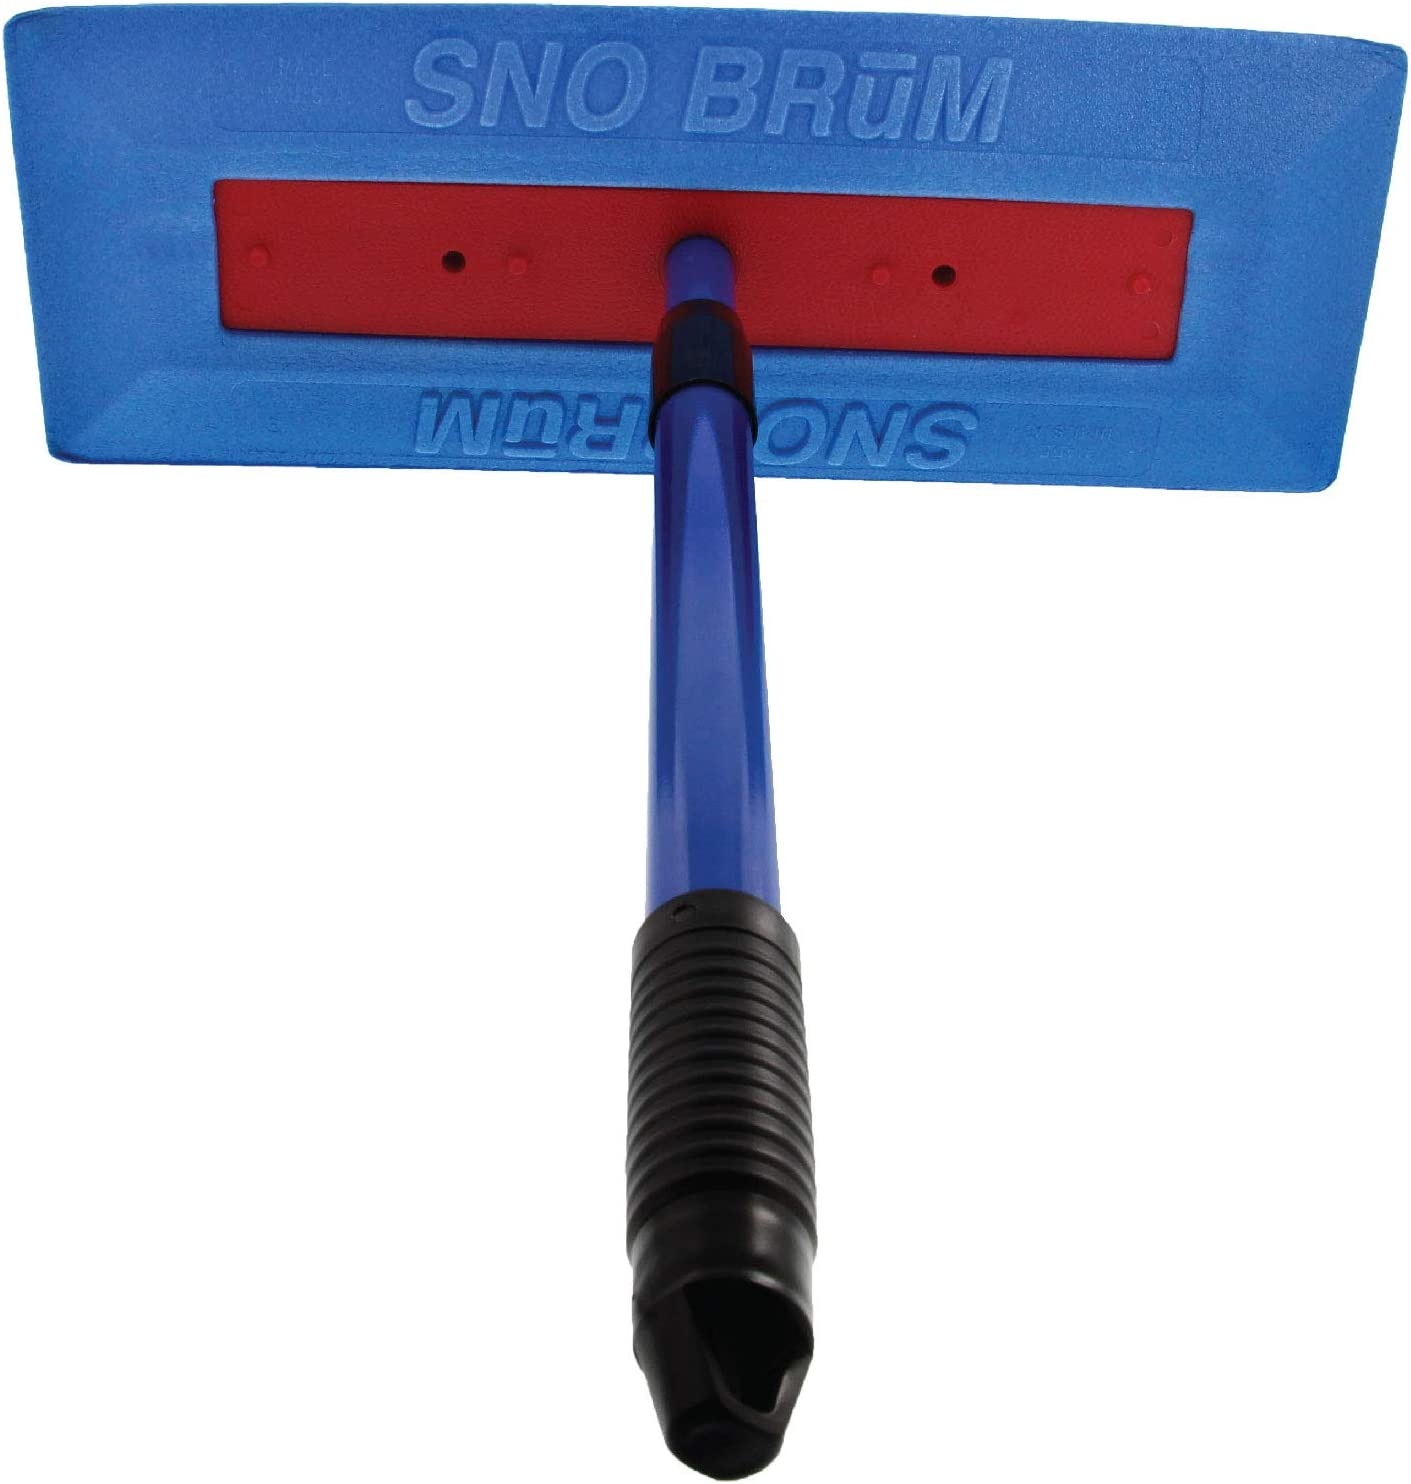 "SNOBRUM – The Original Snow Broom and Snow Remover for Cars and Trucks – 28"" Extendable Handle, Push-Broom Design - Safe Winter Snow Removal for Your Vehicle Without Paint Scratching"